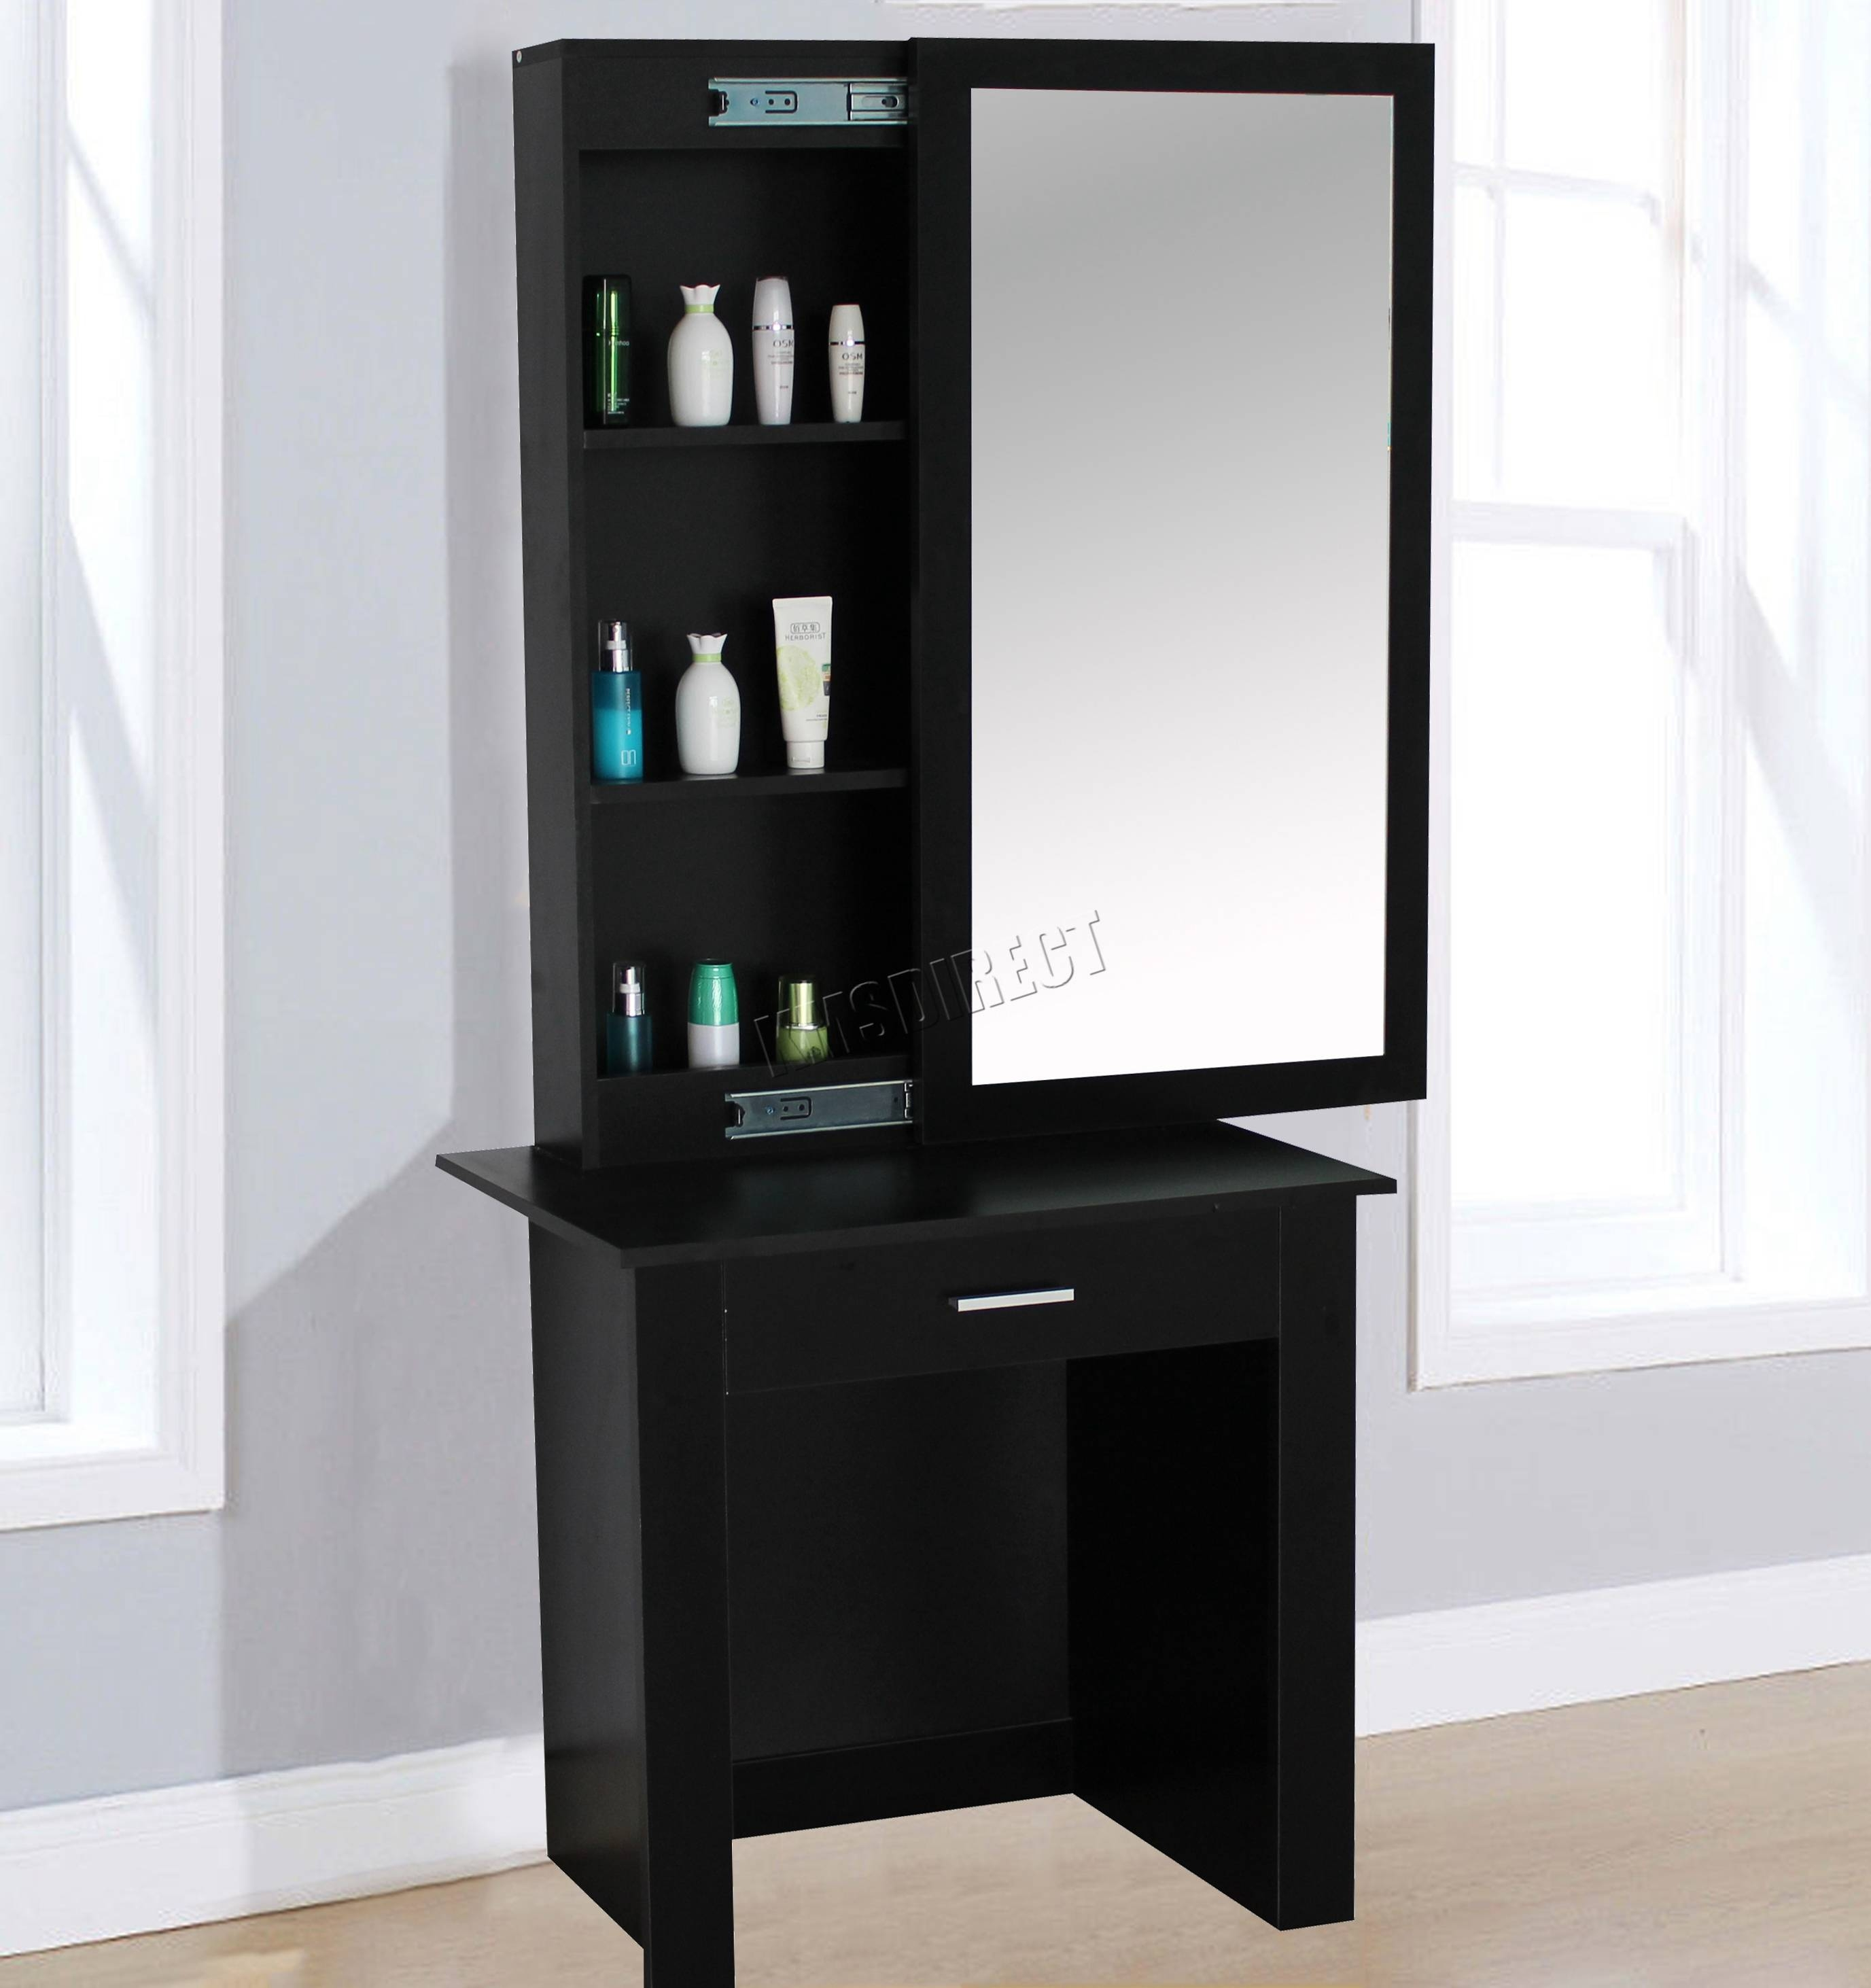 Foxhunter Wooden Makeup Jewelry Dressing Table With Sliding Mirror within Dressing Table With Long Mirrors (Image 10 of 15)